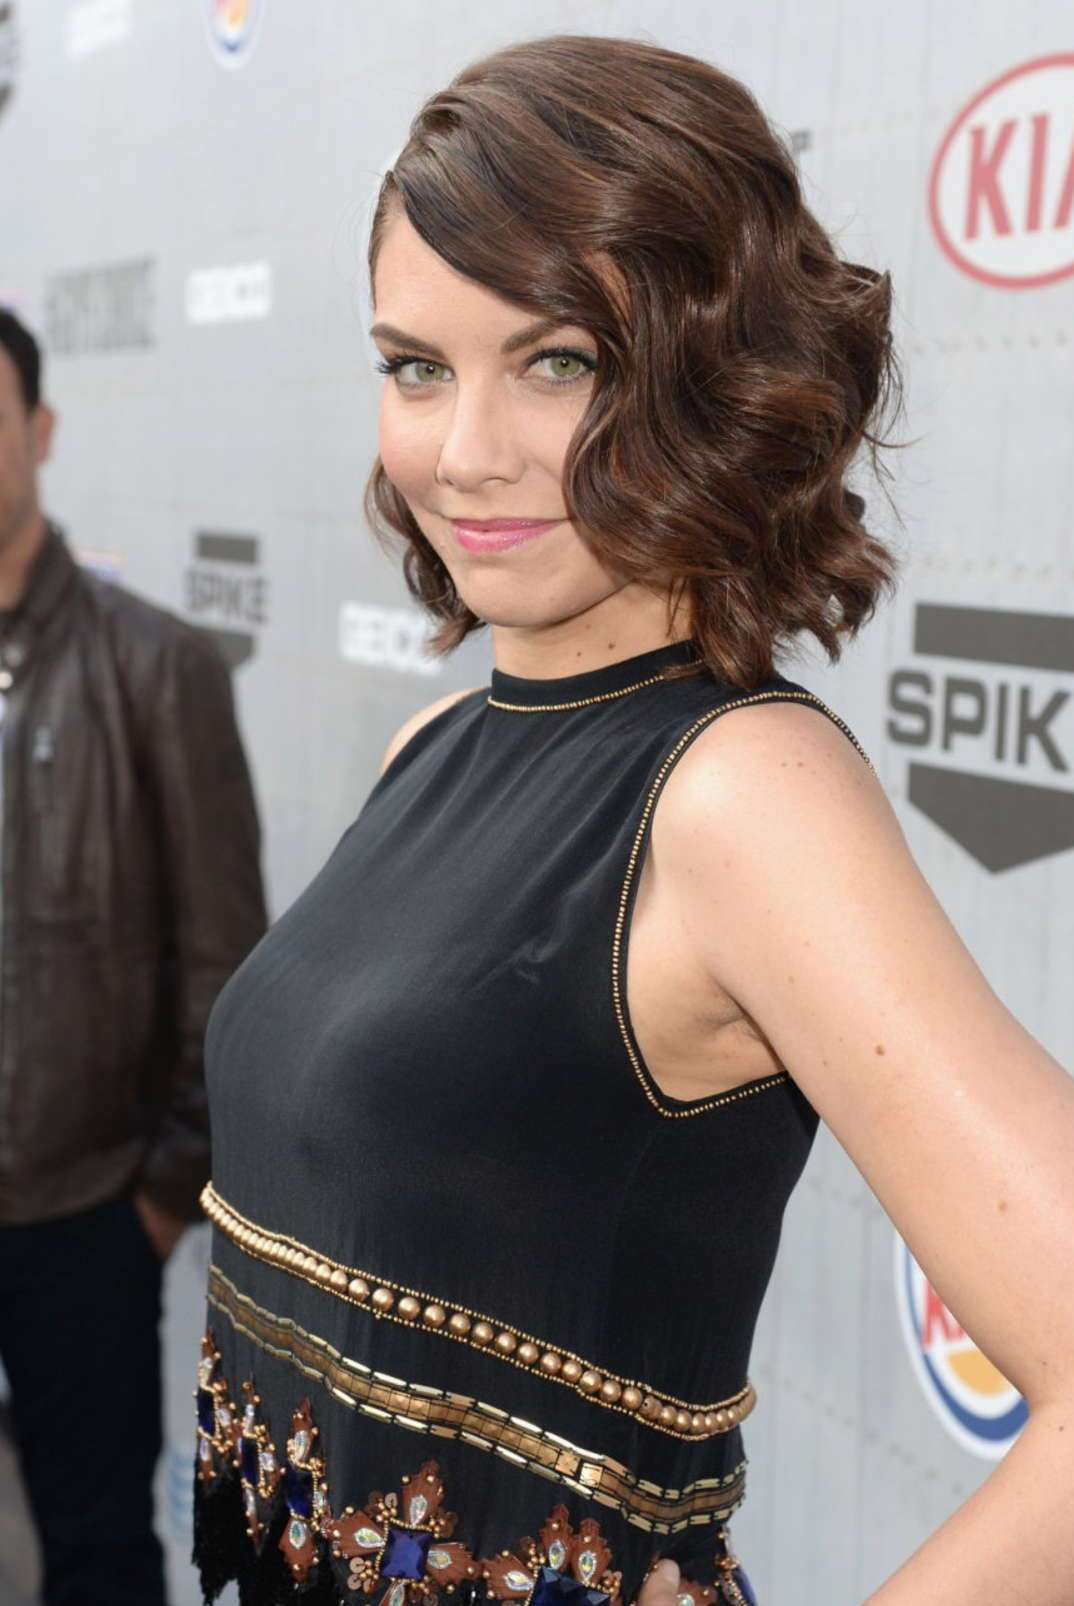 Lauren Cohan Plastic Surgery Before and After - Celebrity Sizes